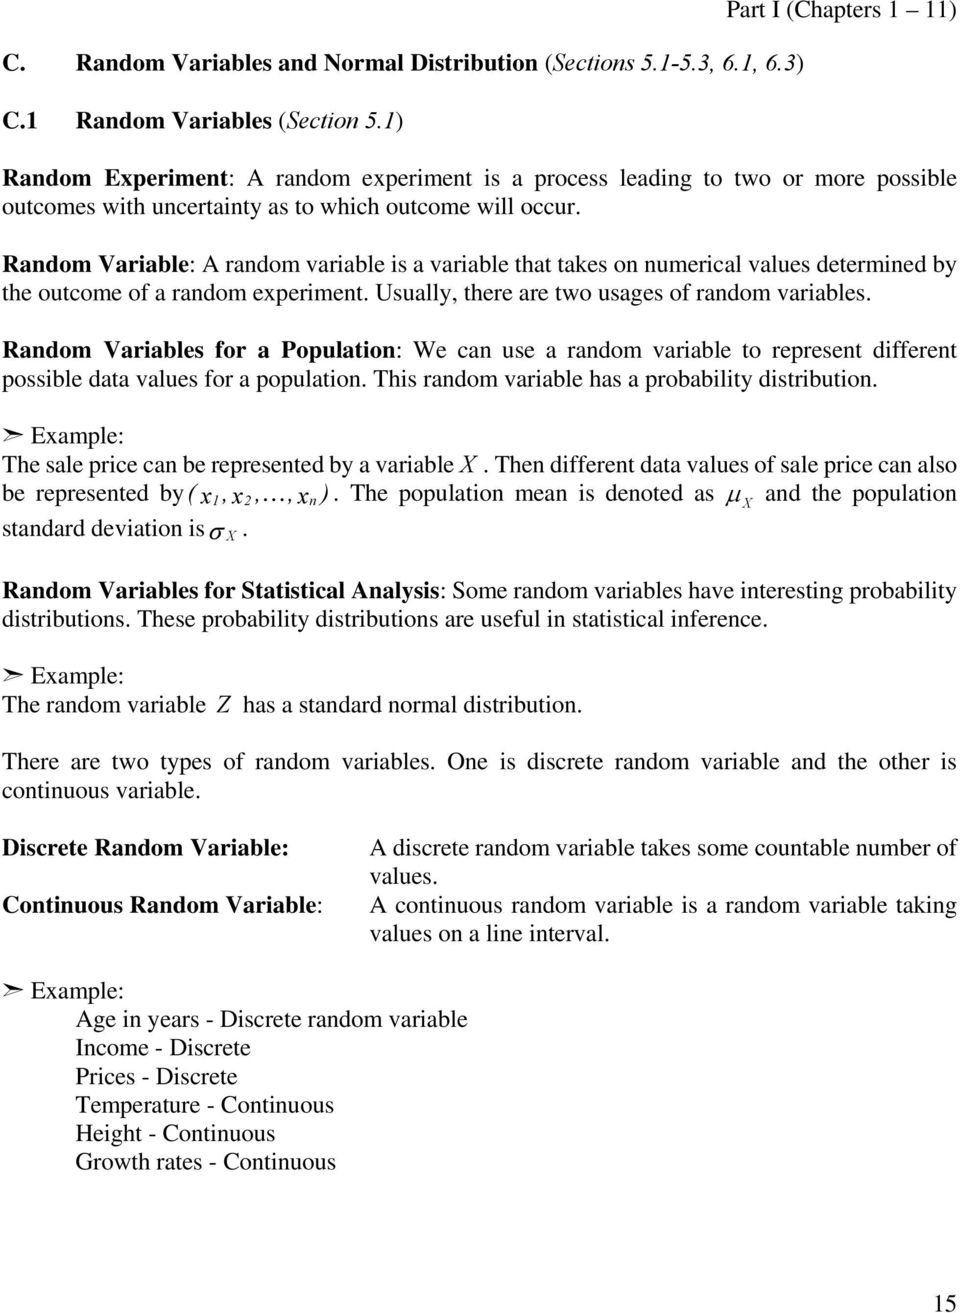 Random Variable: A random variable is a variable that takes on numerical values determined by the outcome of a random eperiment. Usually, there are two usages of random variables.